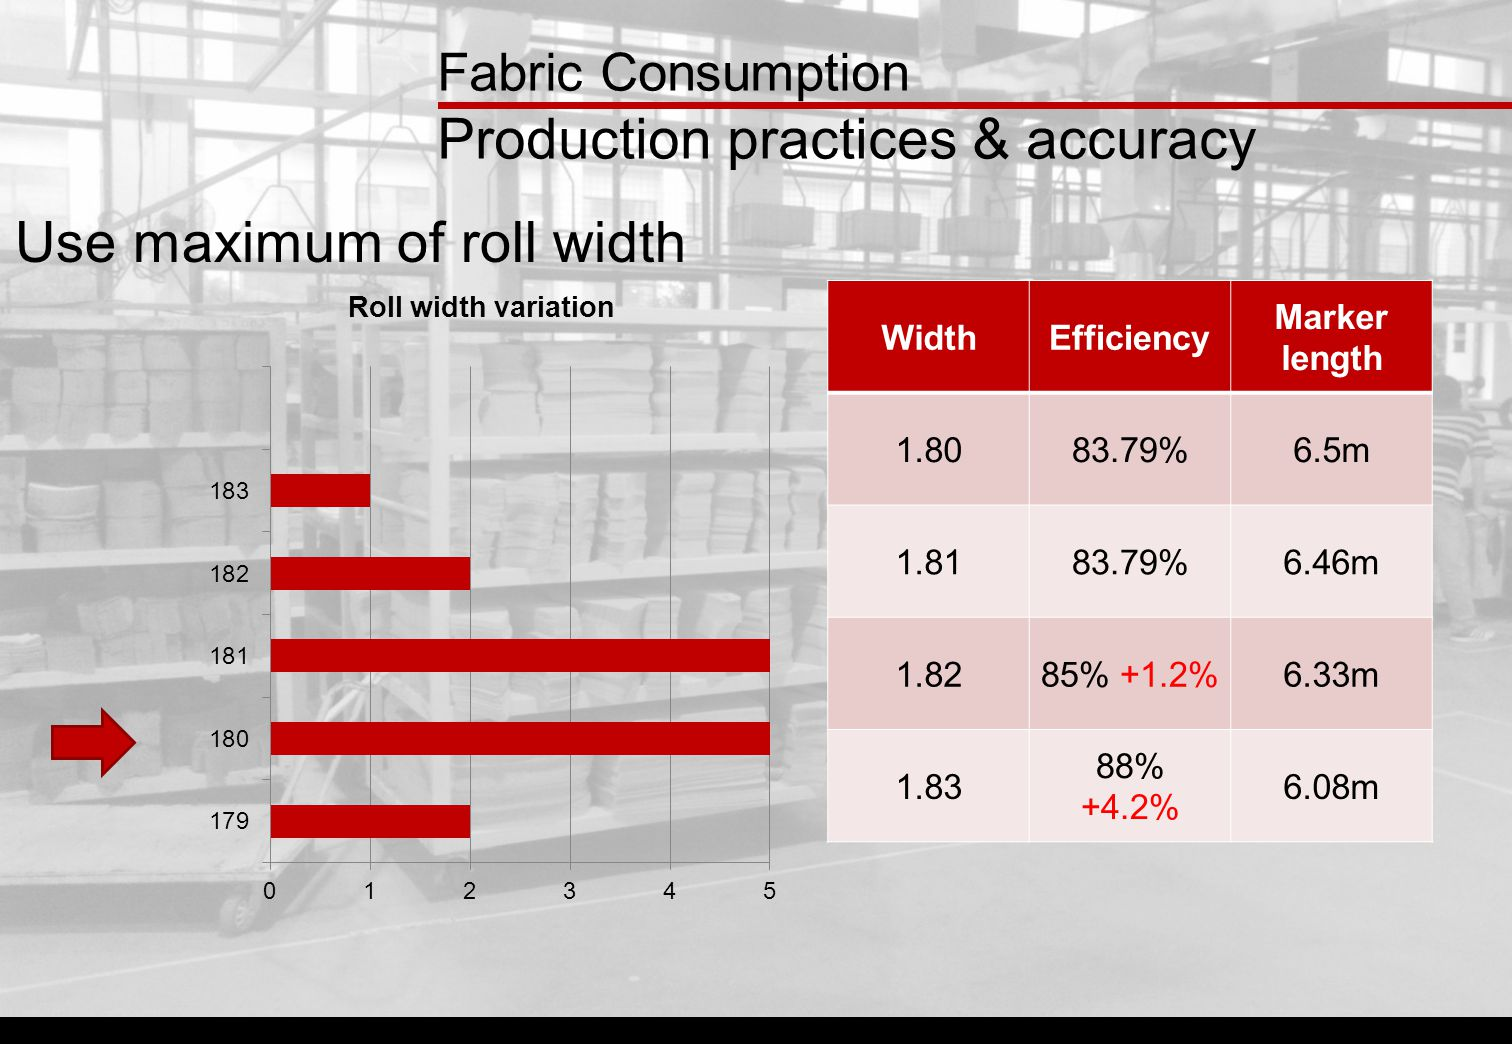 WidthEfficiency Marker length 1.8083.79%6.5m 1.8183.79%6.46m 1.8285% +1.2%6.33m 1.83 88% +4.2% 6.08m Use maximum of roll width Fabric Consumption Production practices & accuracy